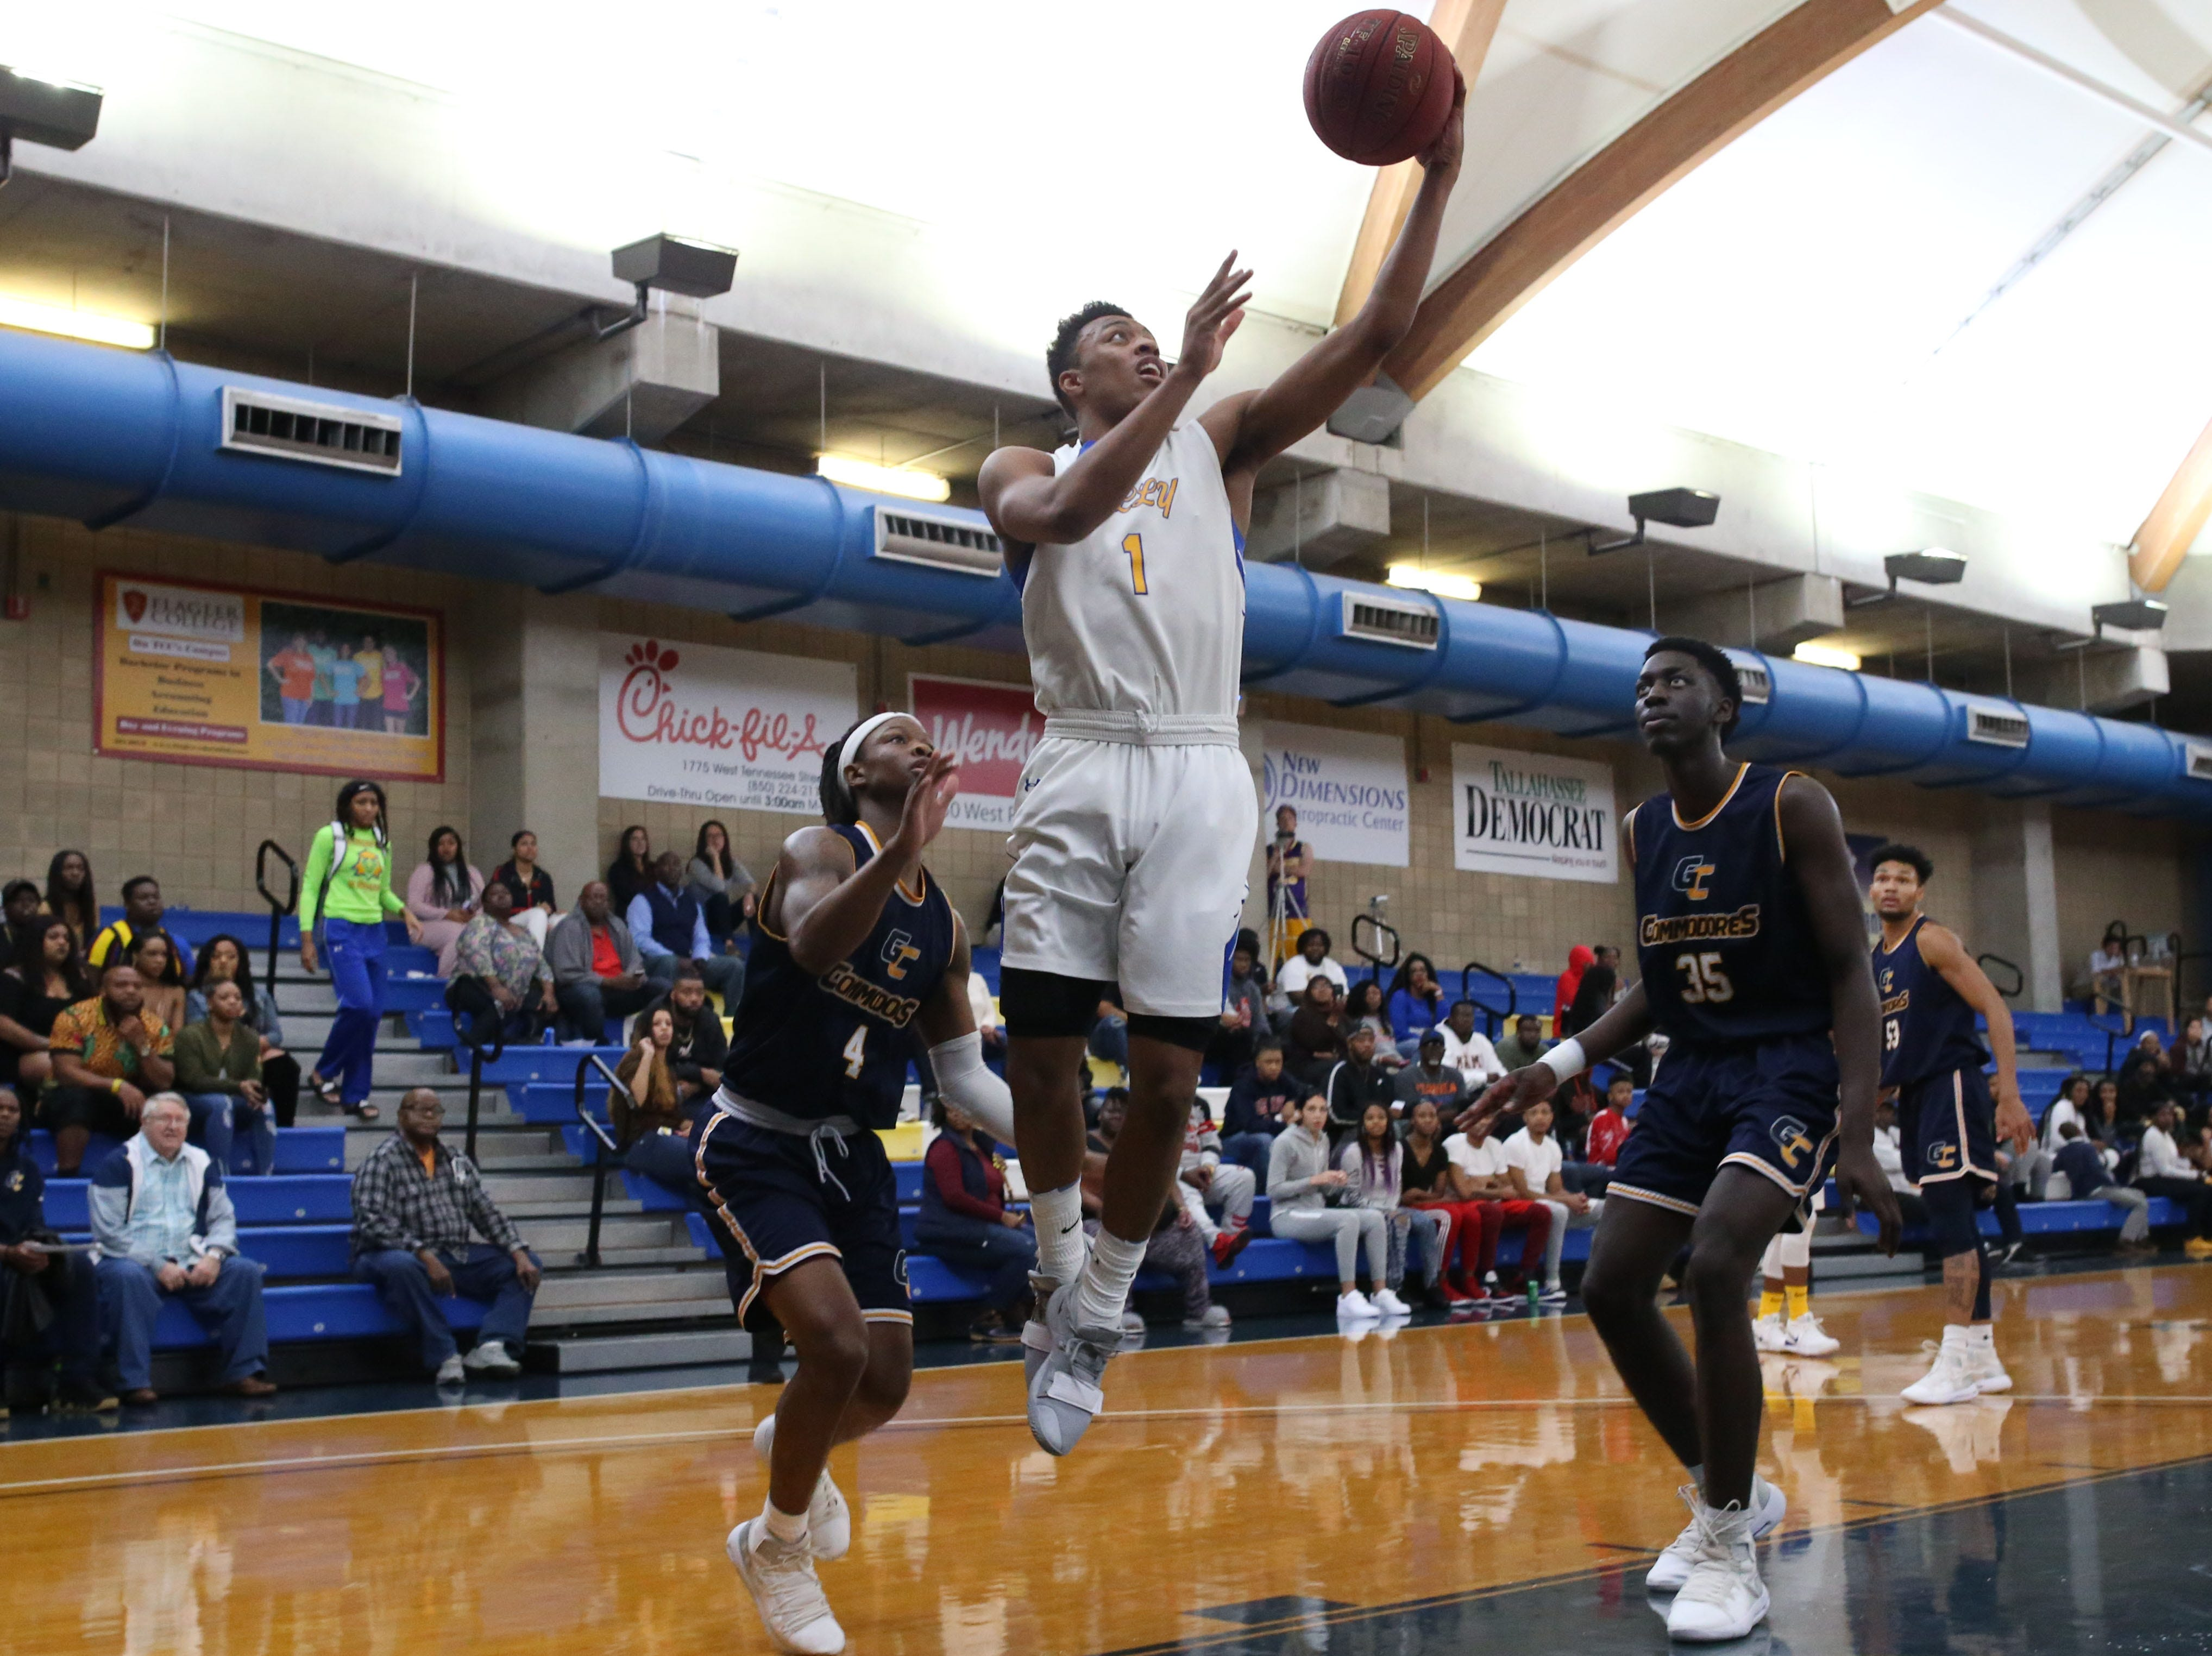 Tallahassee Community College Eagles guard Eric Boone (1) goes in for a layup. The Tallahassee Community College Eagles host the Gulf Coast State College Commodores in a conference match-up in the Eagledome, Saturday, Jan. 5, 2019.